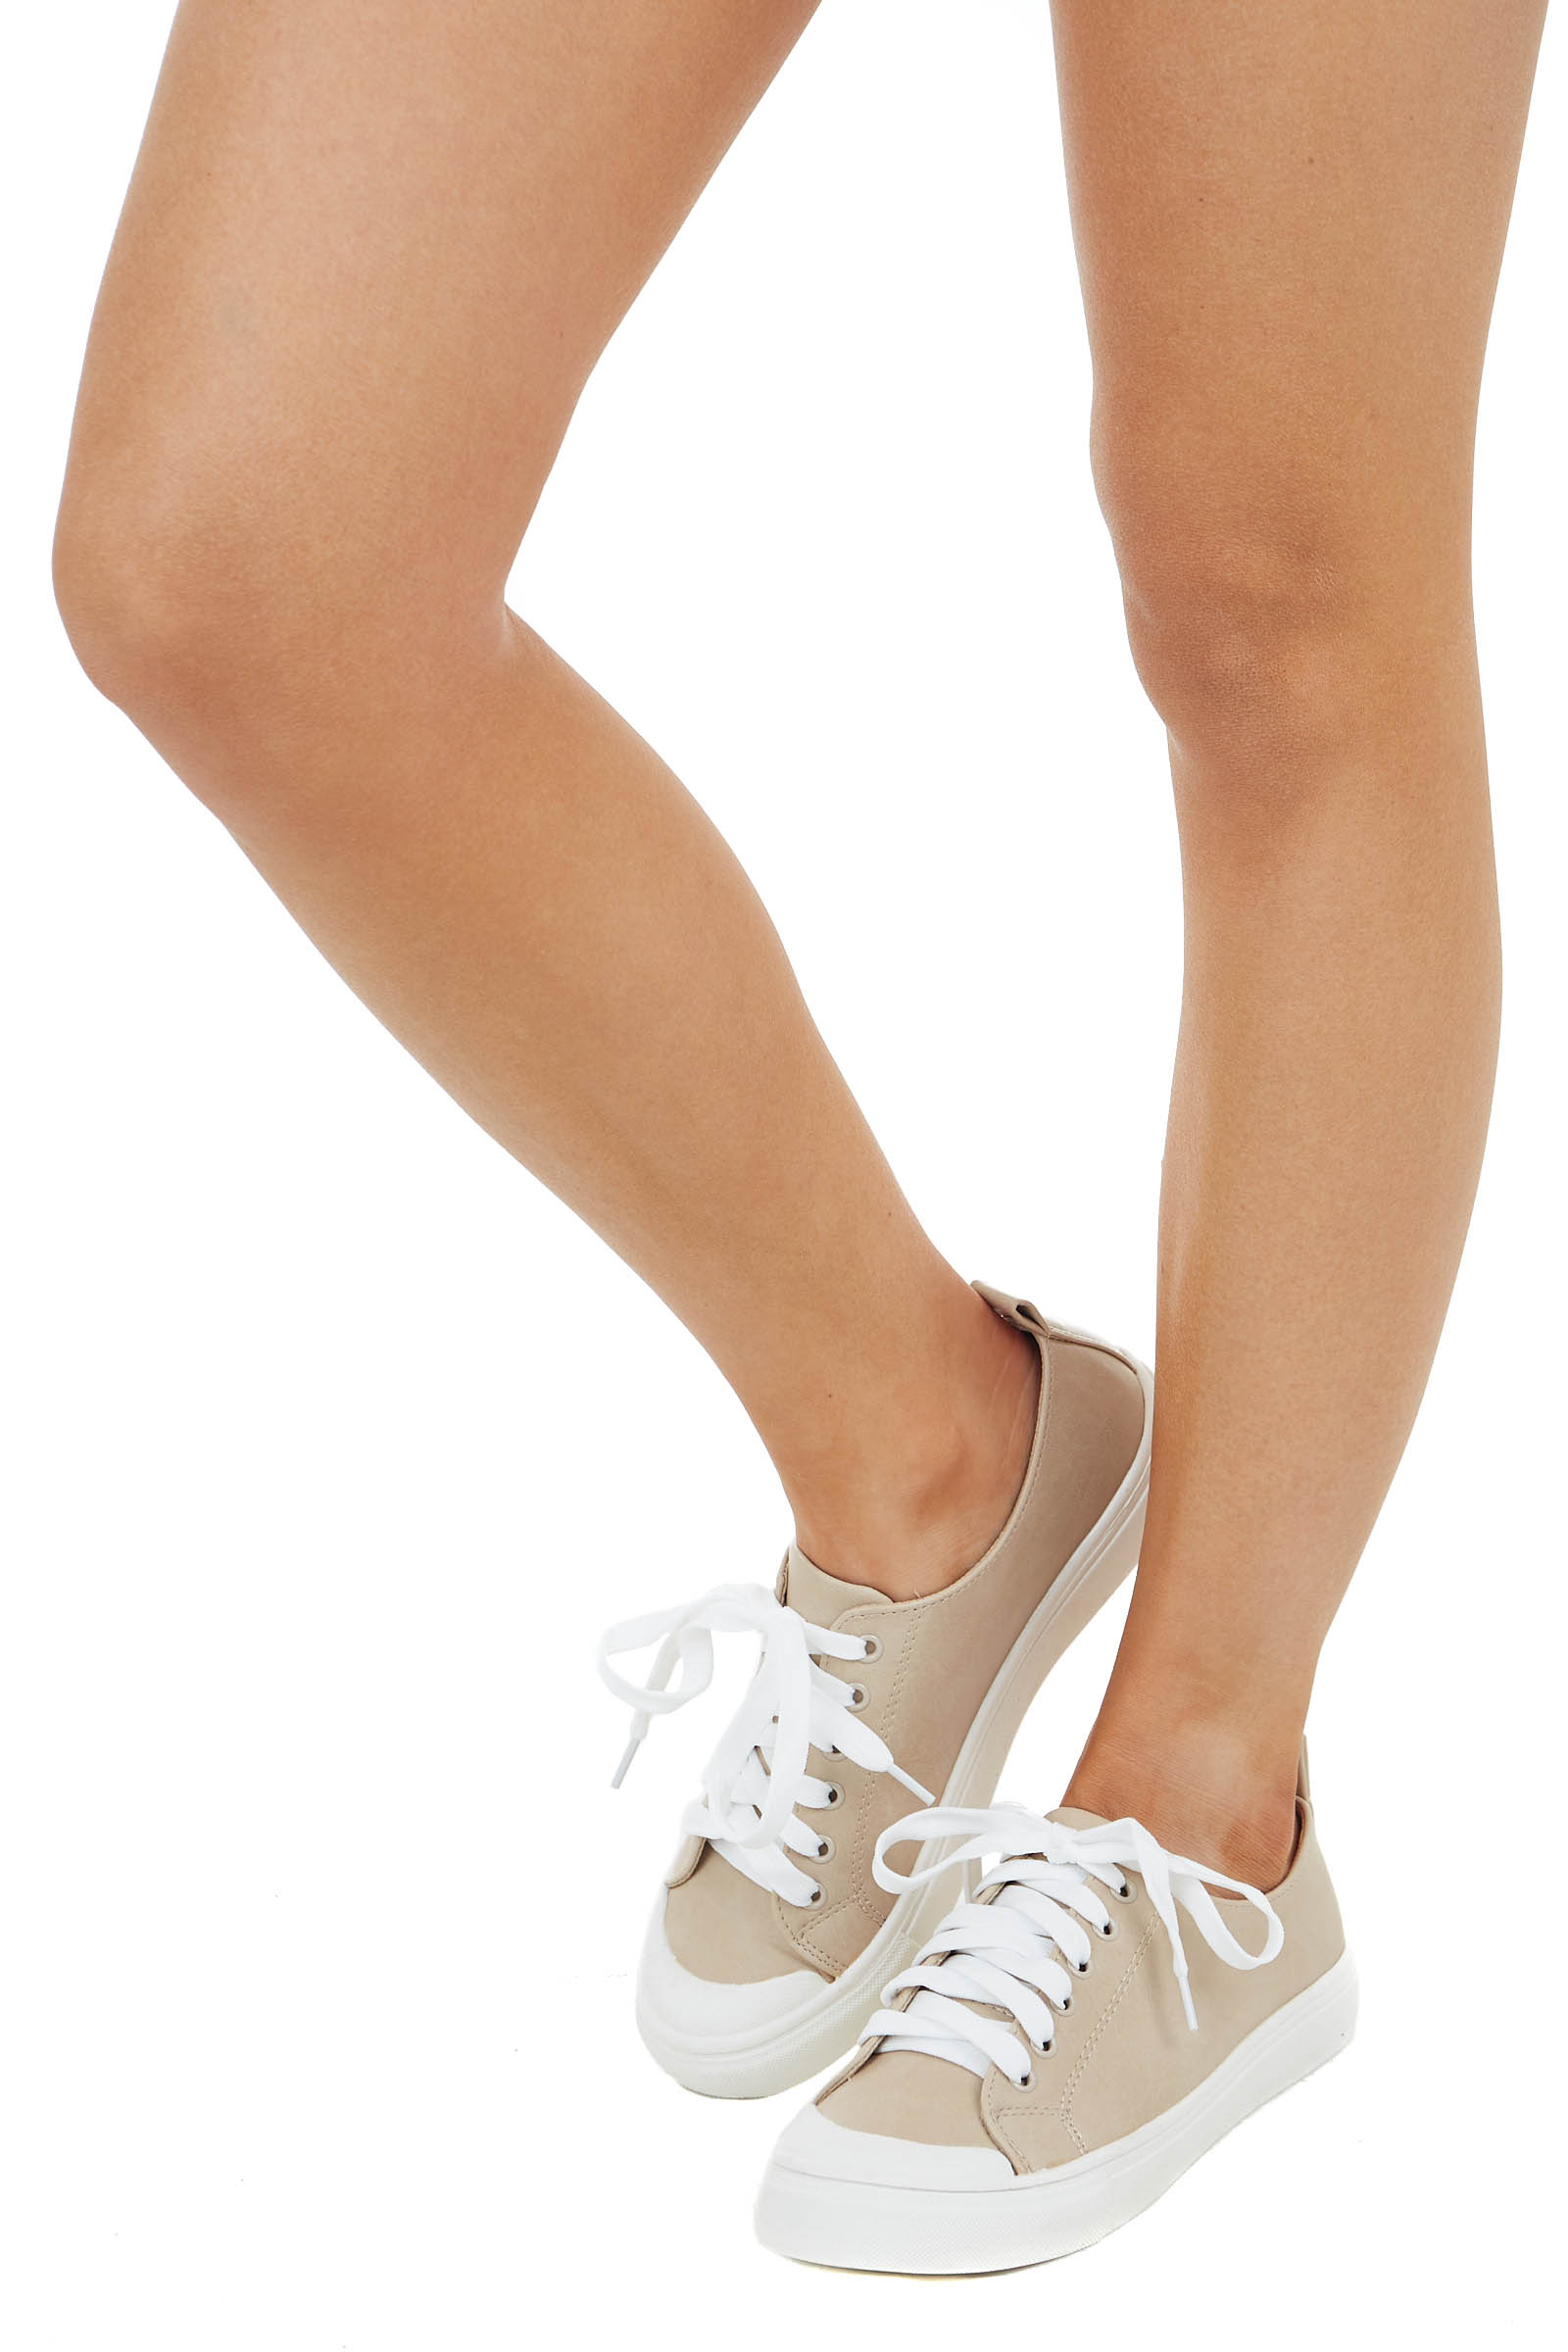 Beige Faux Leather Sneakers with White Laces and Rubber Sole